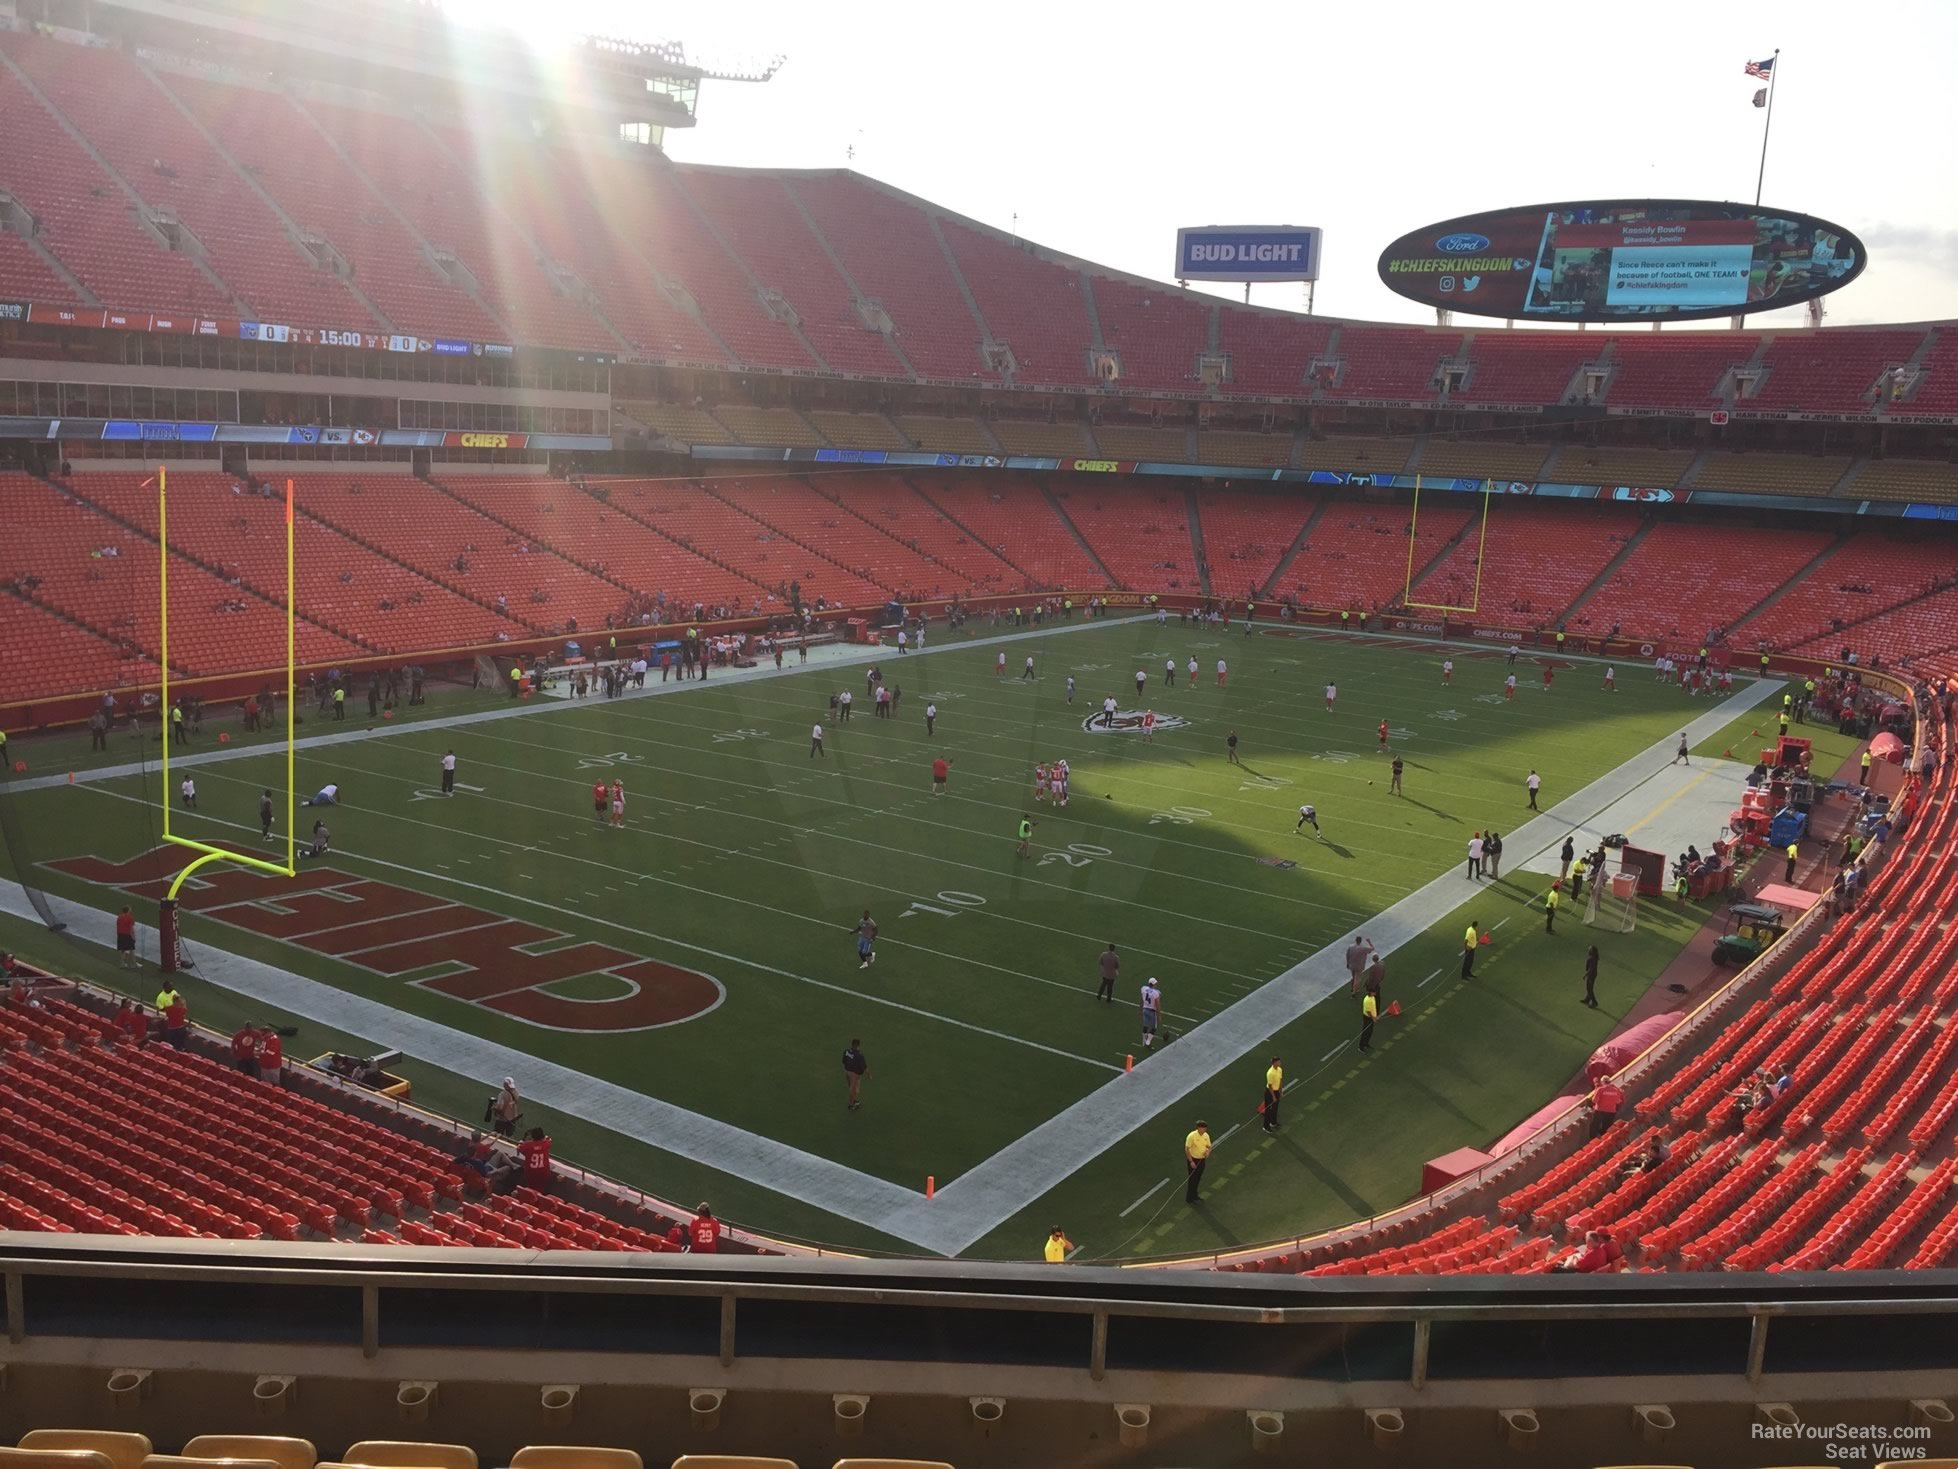 Seat View for Arrowhead Stadium Section 209, Row 7